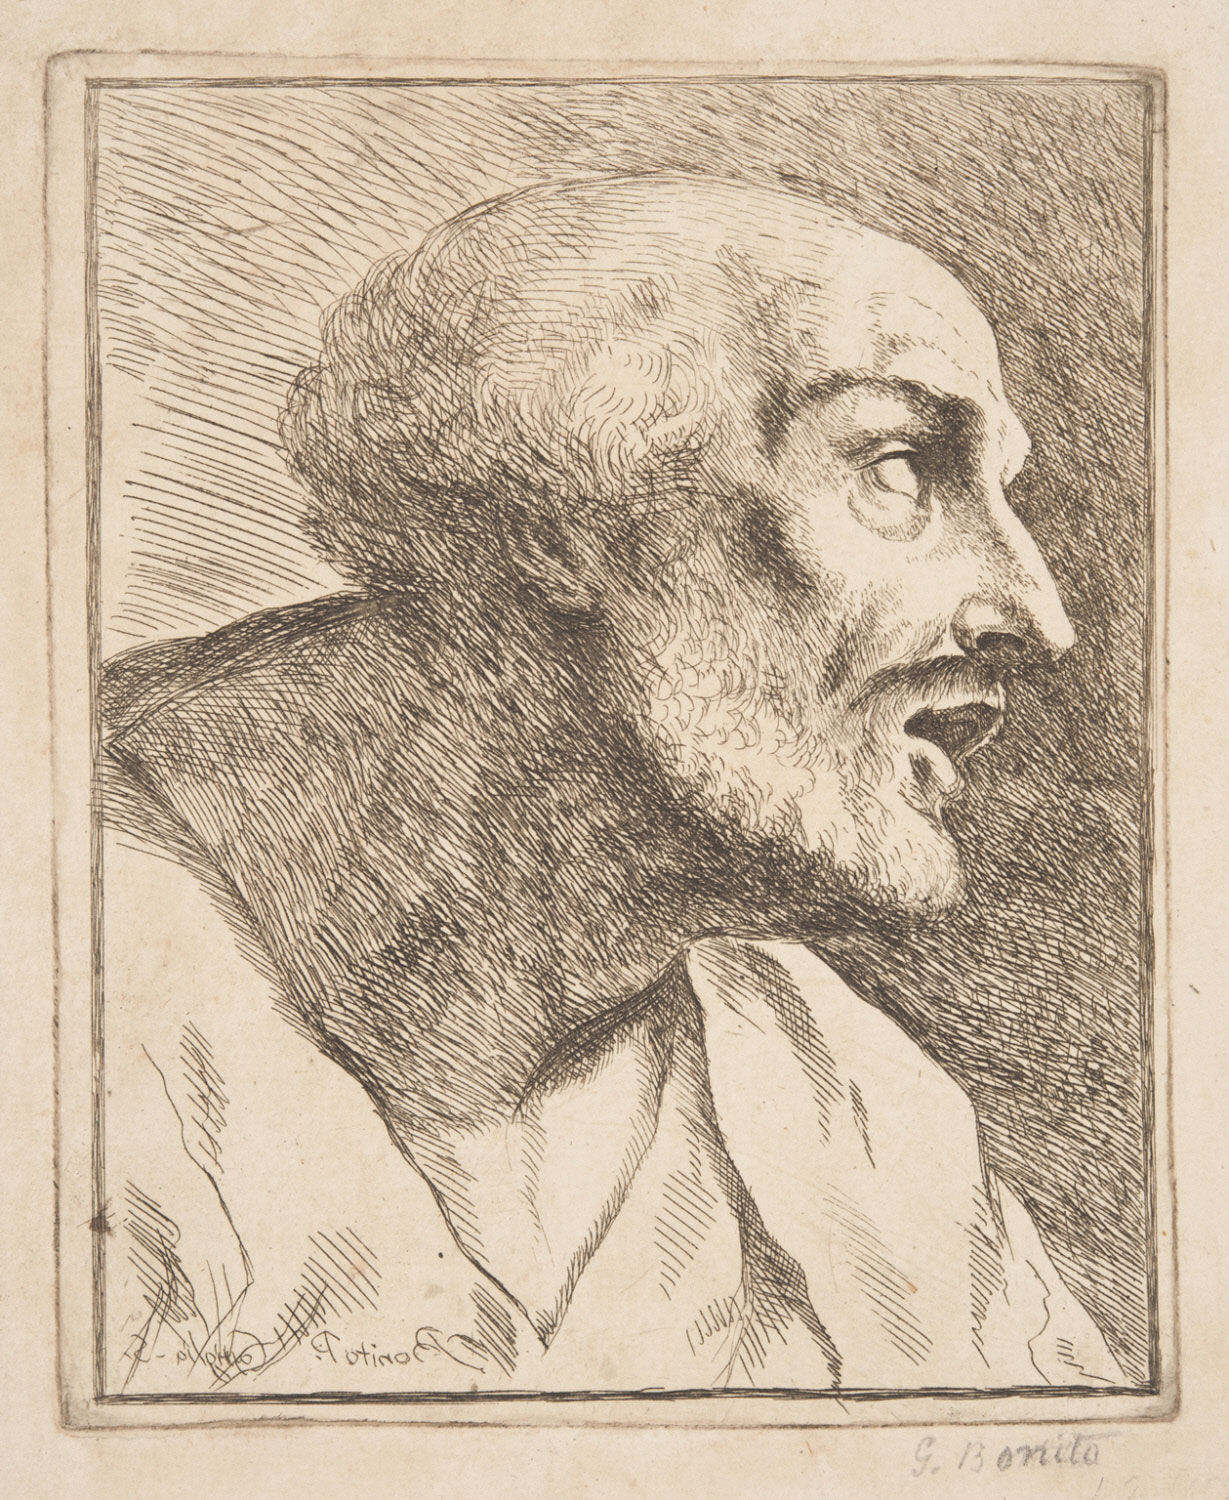 Bust of a Man with an Open Mouth